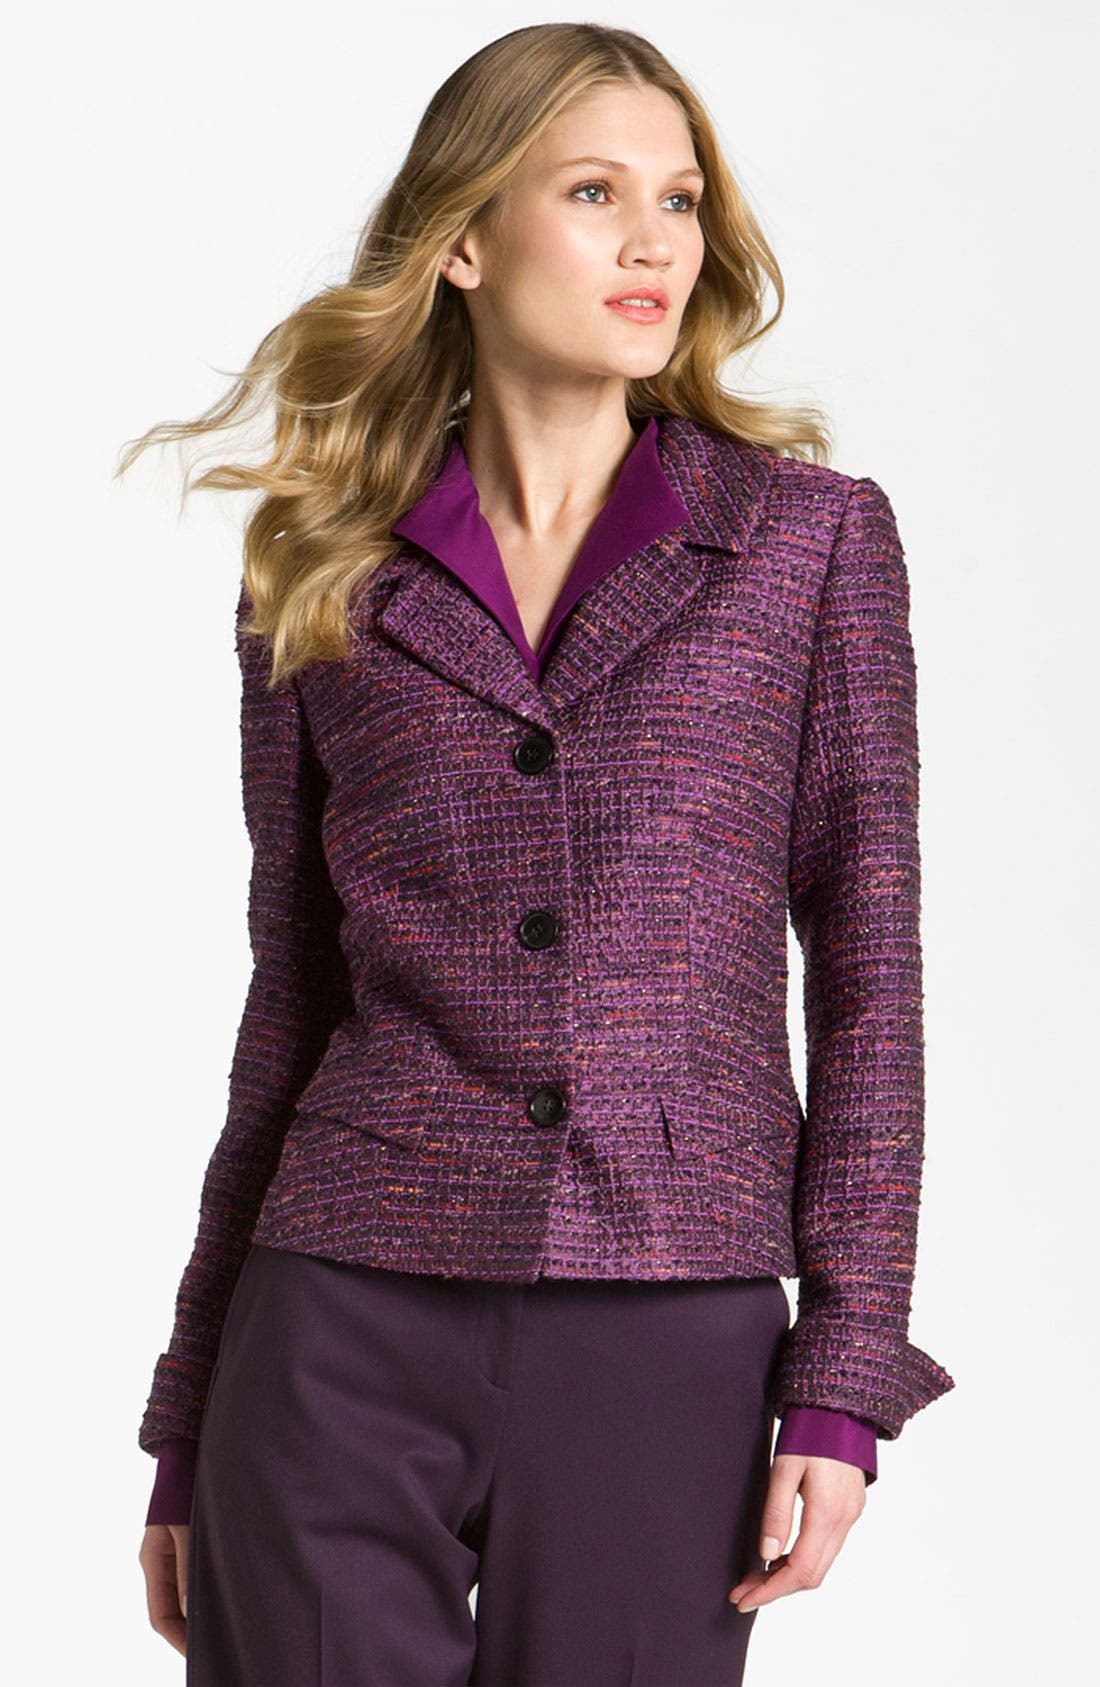 Alternate Image 1 Selected - Lafayette 148 New York 'Melodic' Tweed Jacket